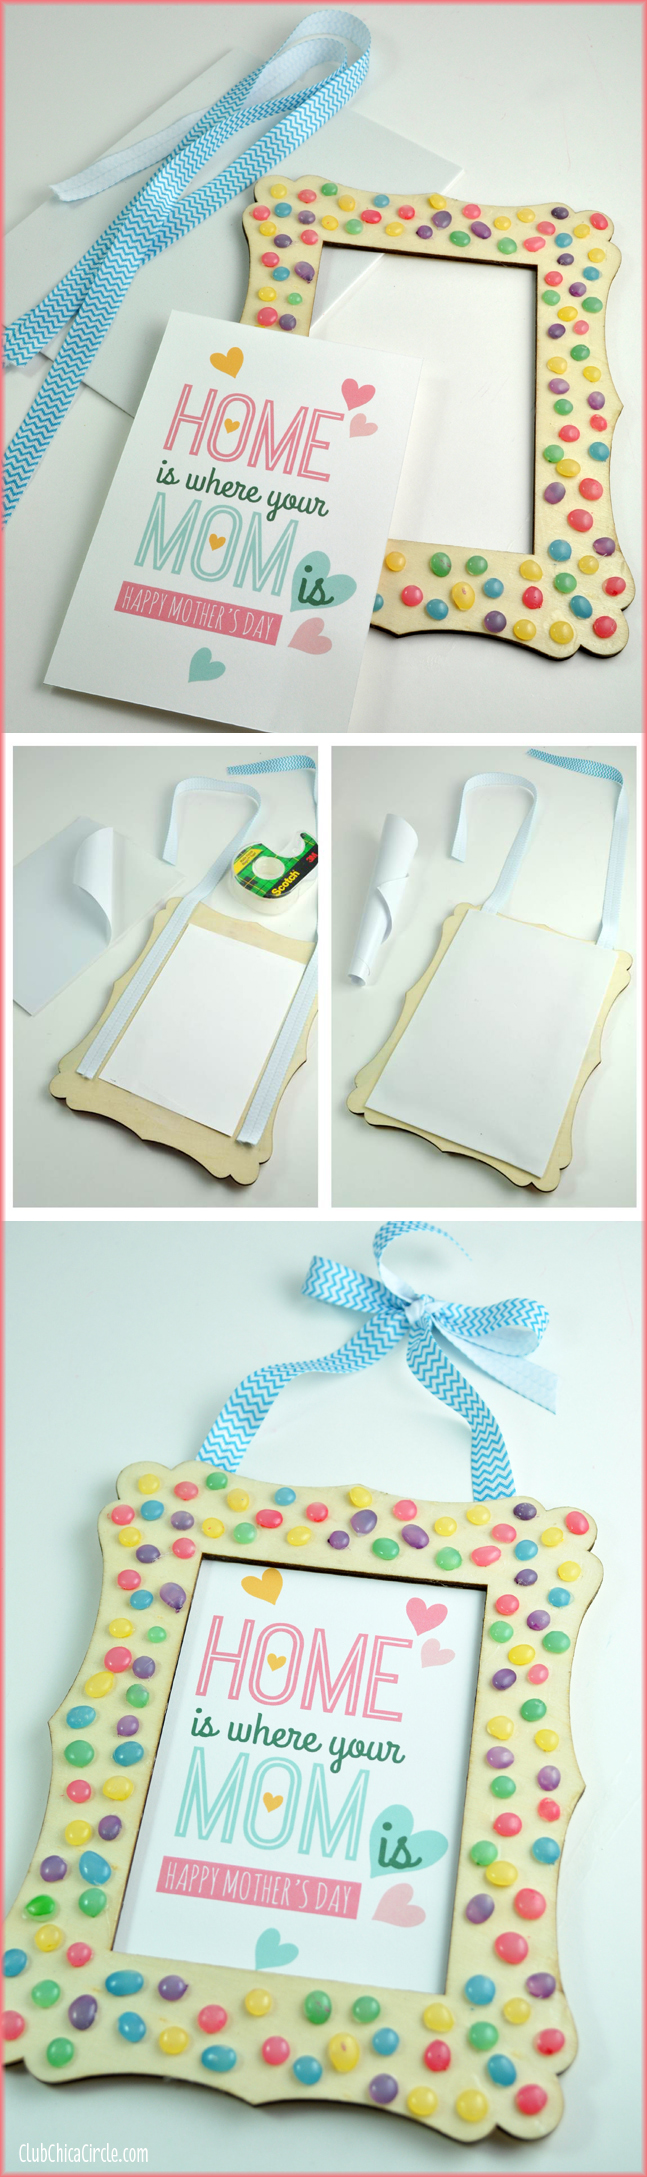 Mother's Day Homemade Frame Craft with painted glue gun dots